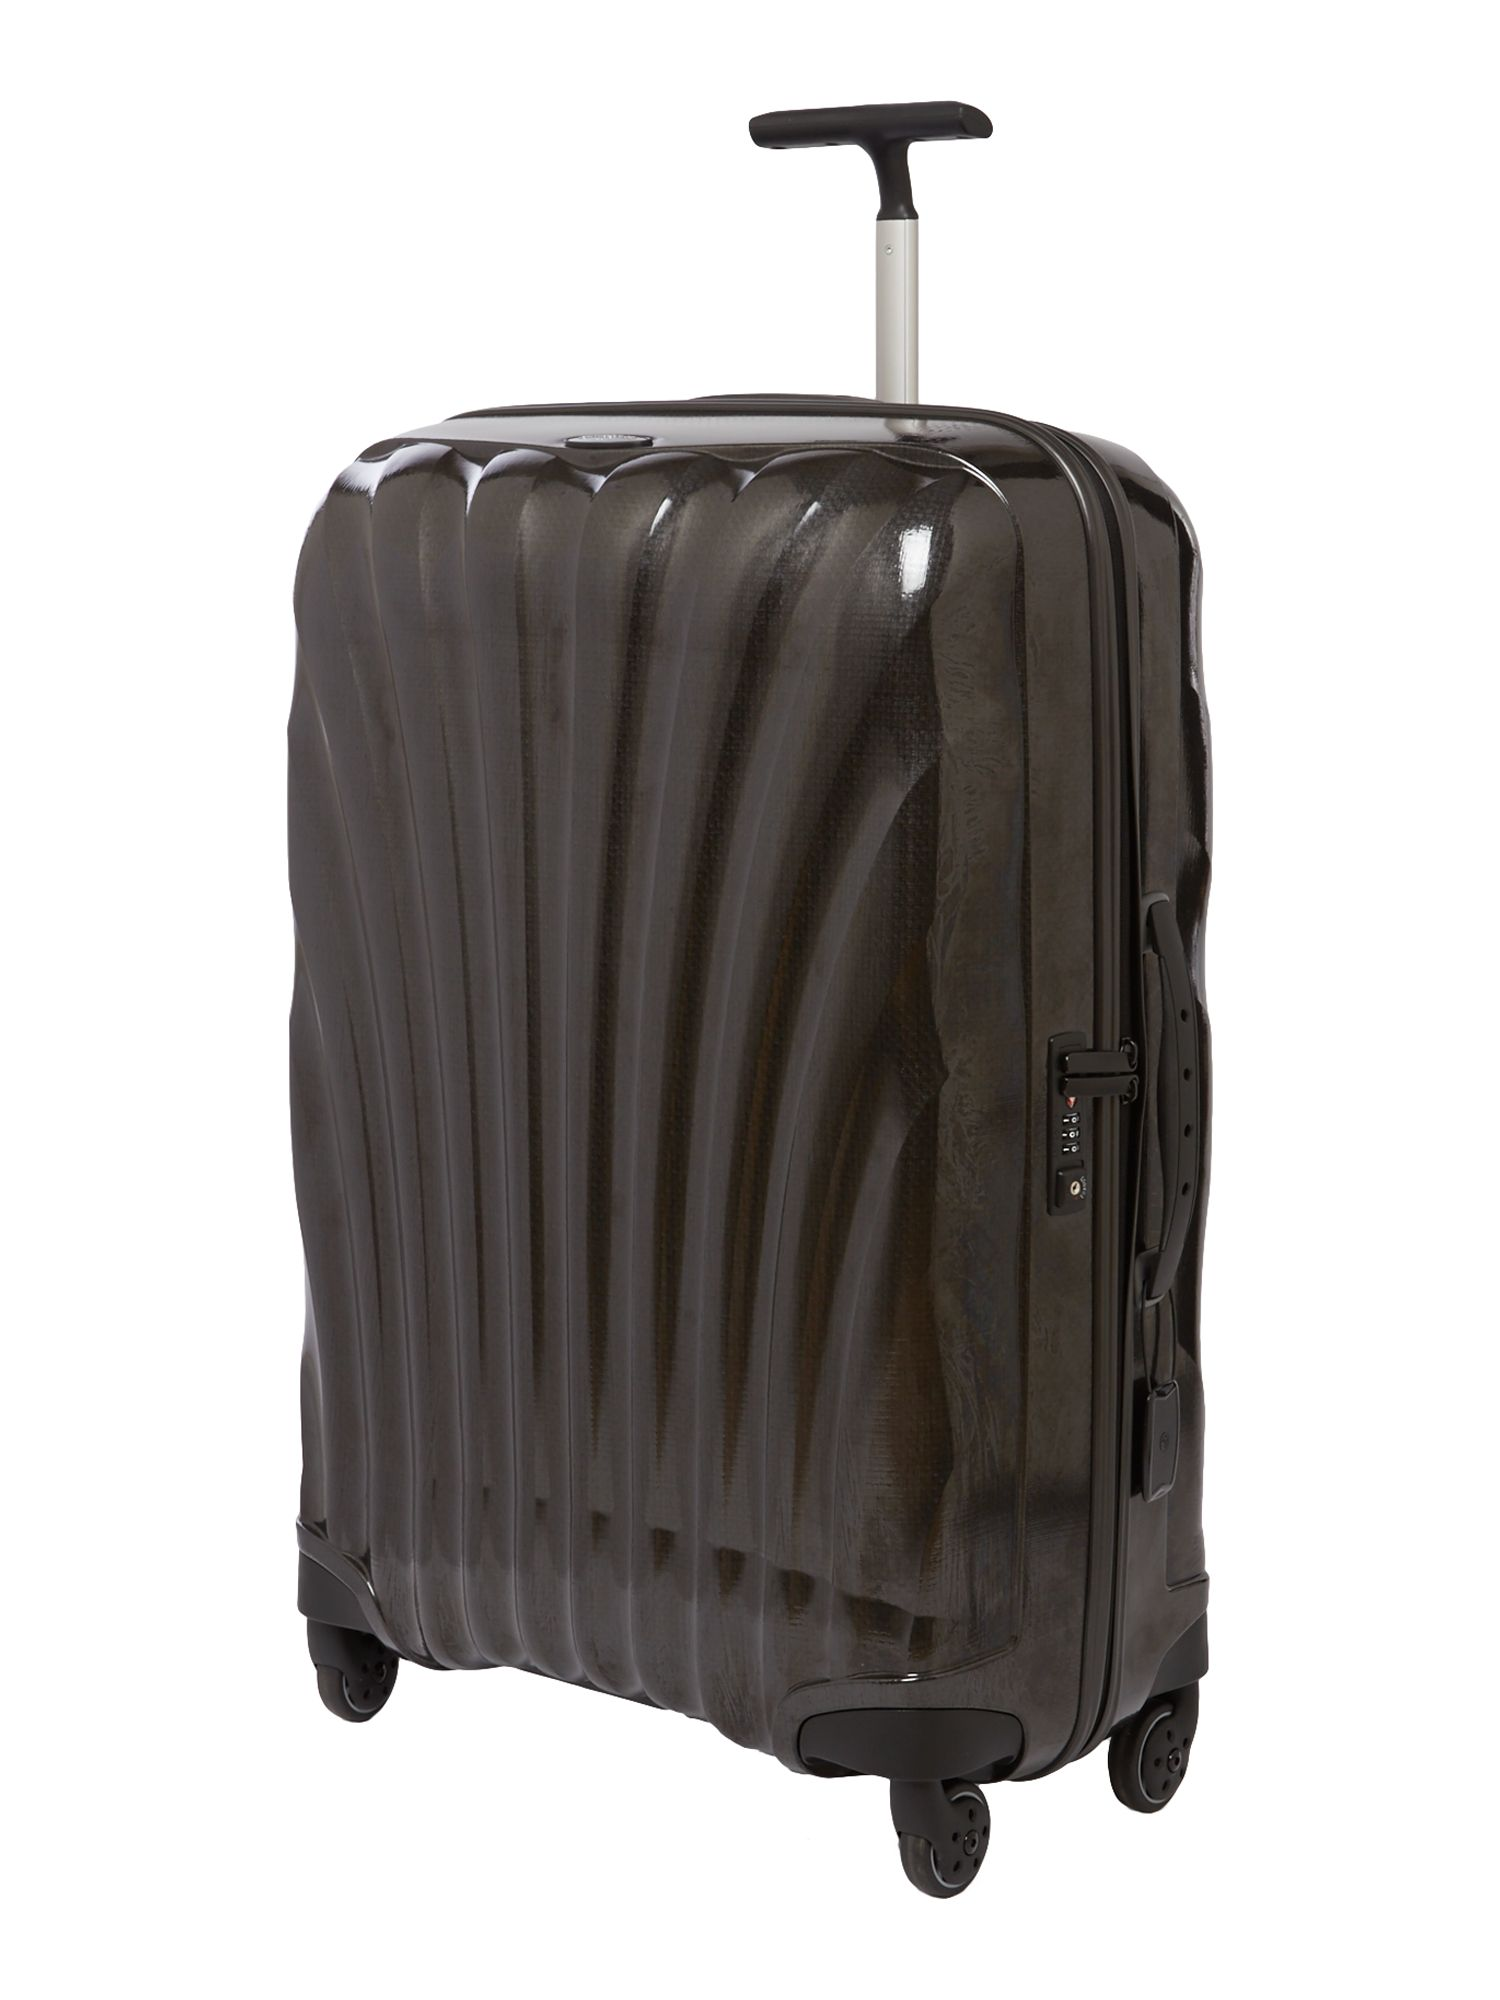 Cosmolite 4-wheel large suitcase